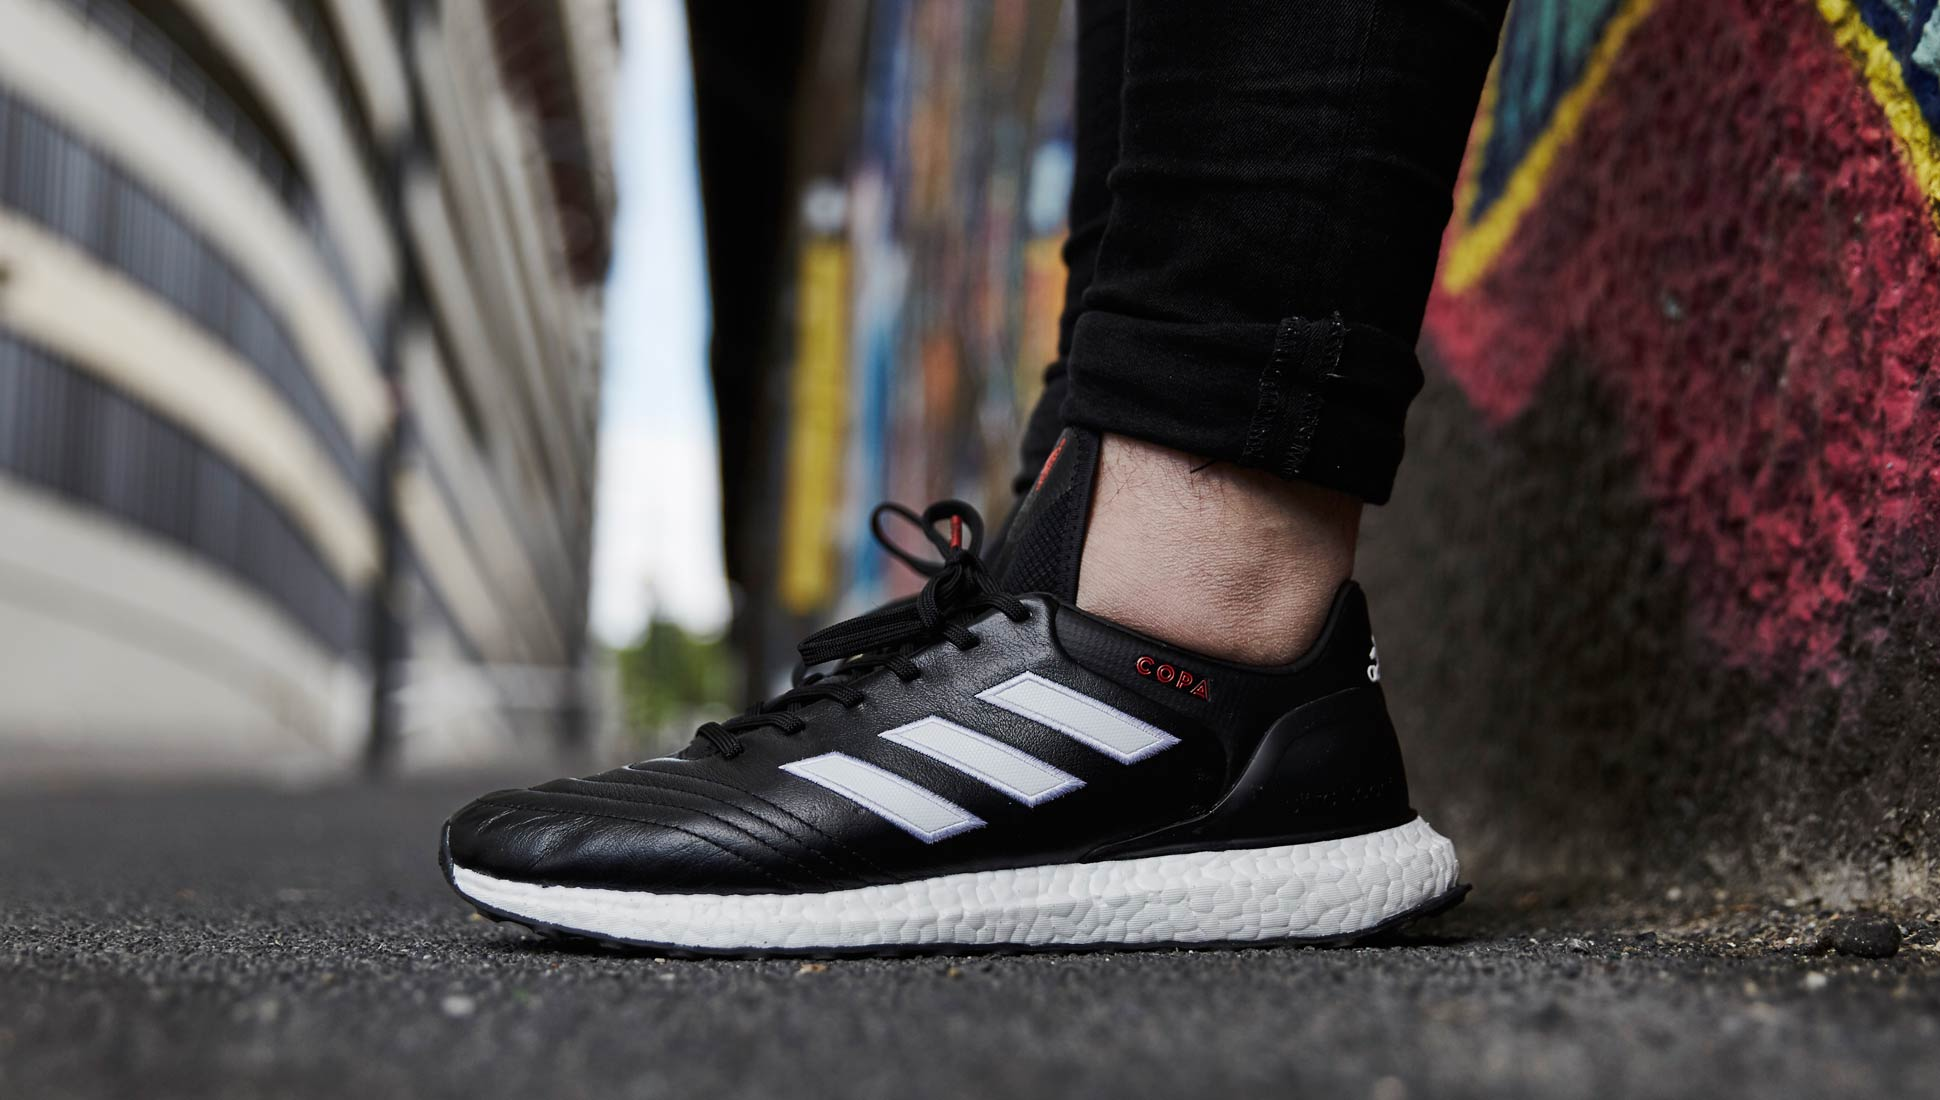 28cc33d36ae26 adidas Copa 17.1 UltraBOOST Shoes - SoccerBible.